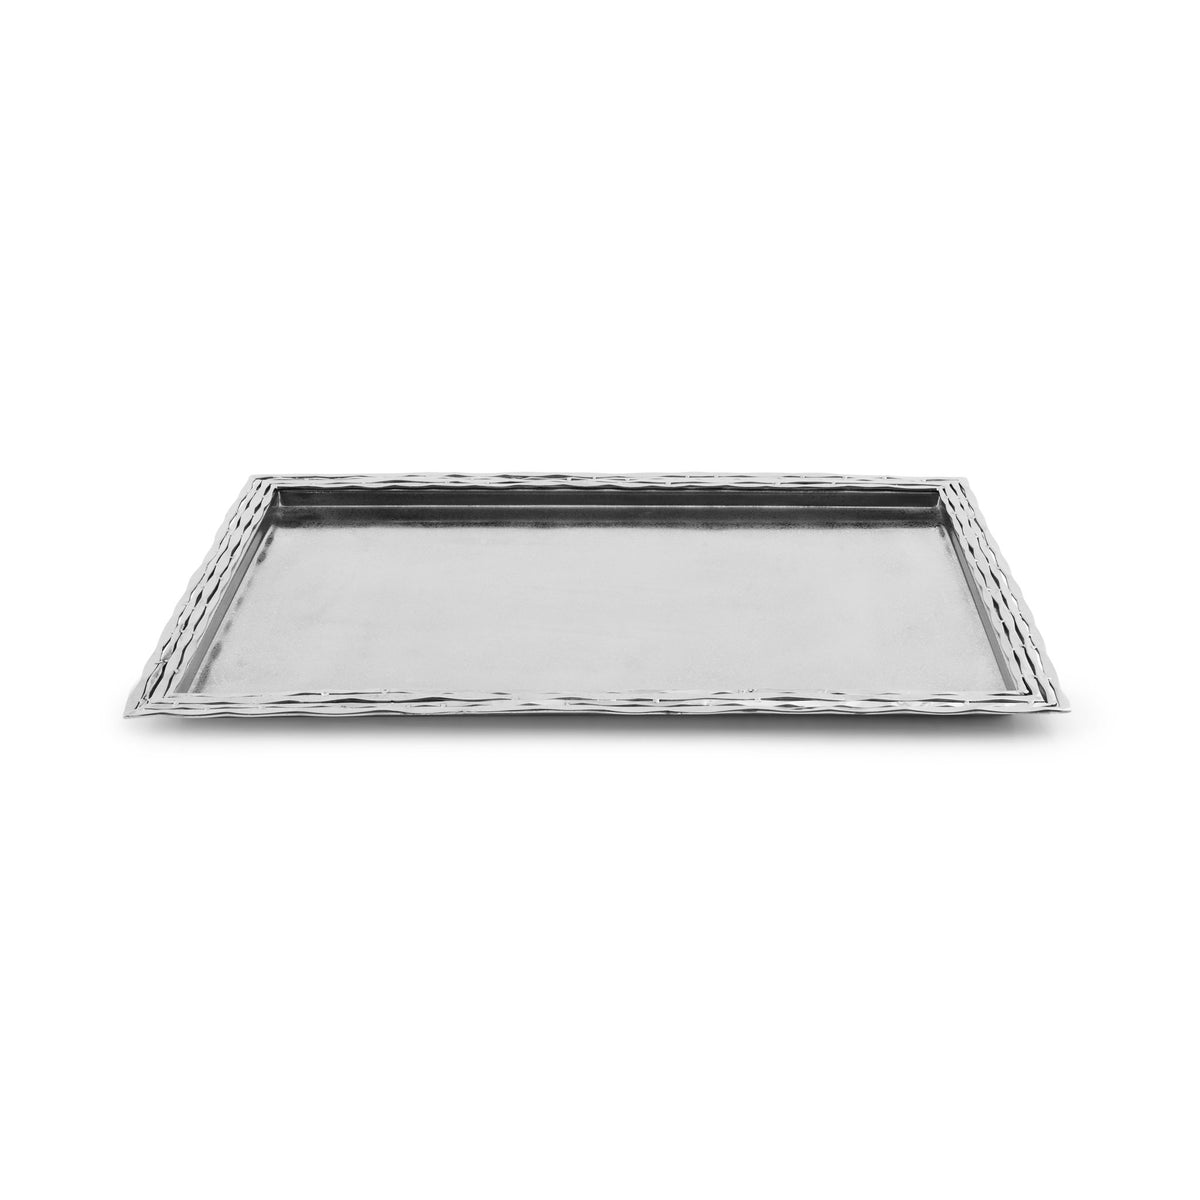 Mirage Large Tray